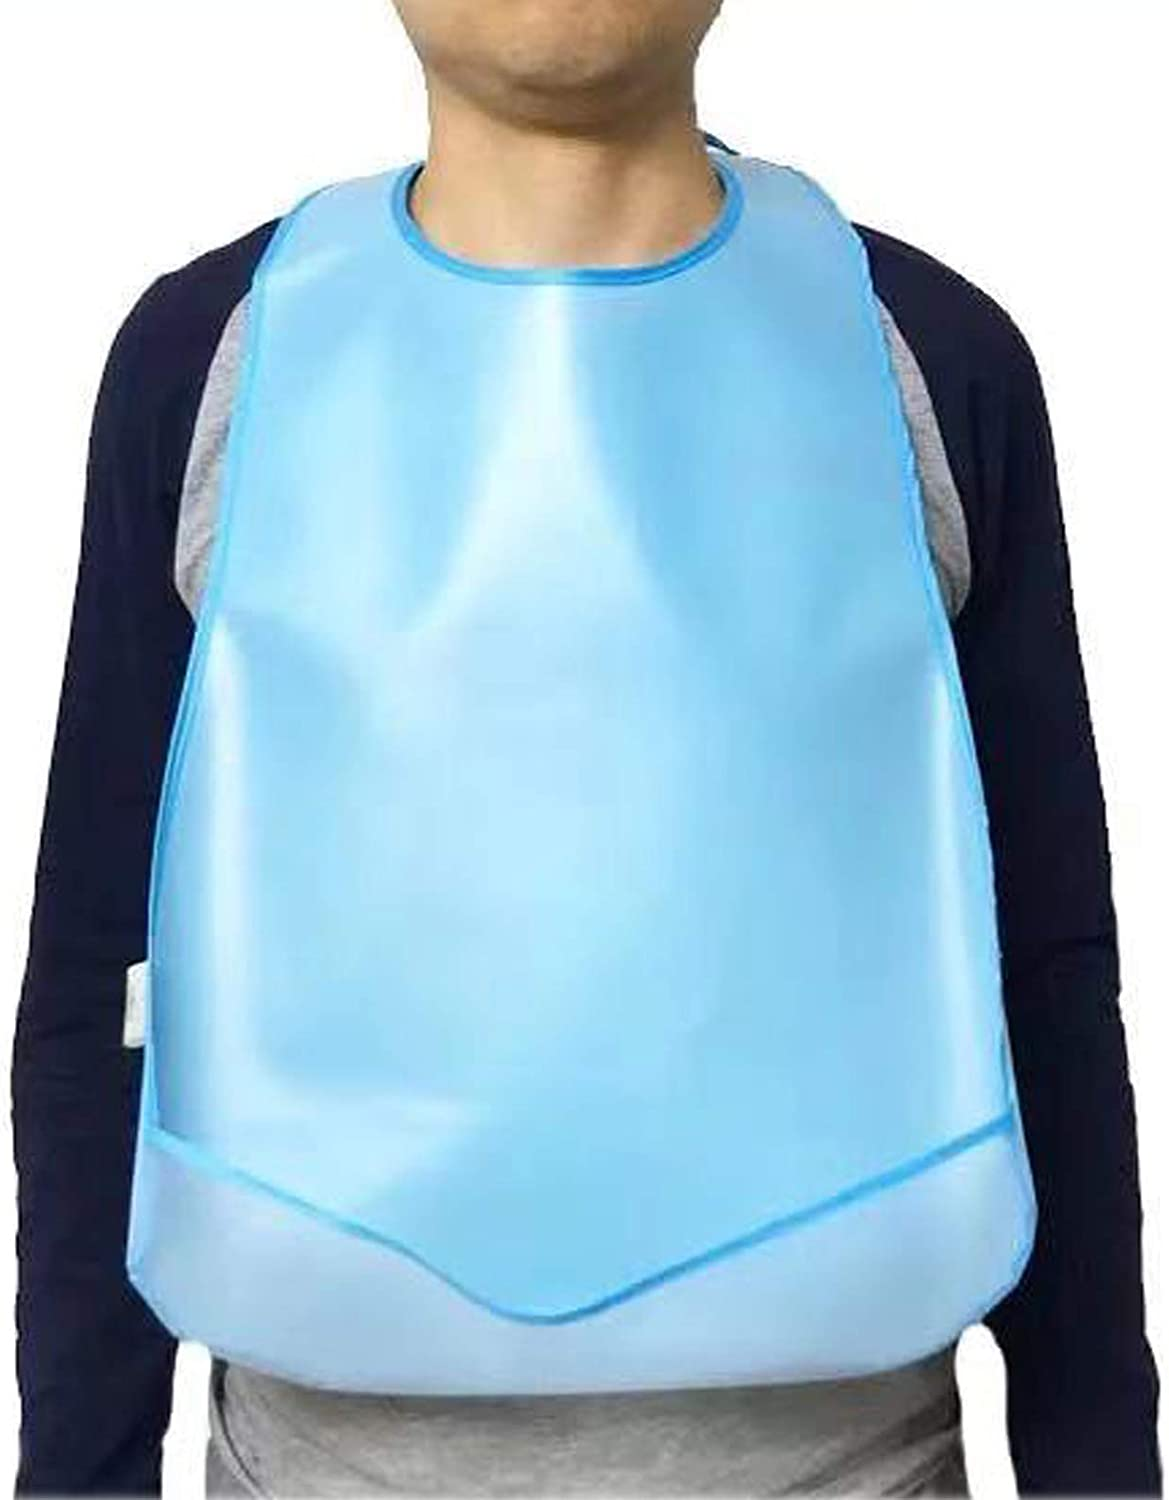 2 Pack Silicone Adult Bibs for Eating Reusable Portable Waterproof Clothing Protectors With food Catcher For Men Women Easy To Clean